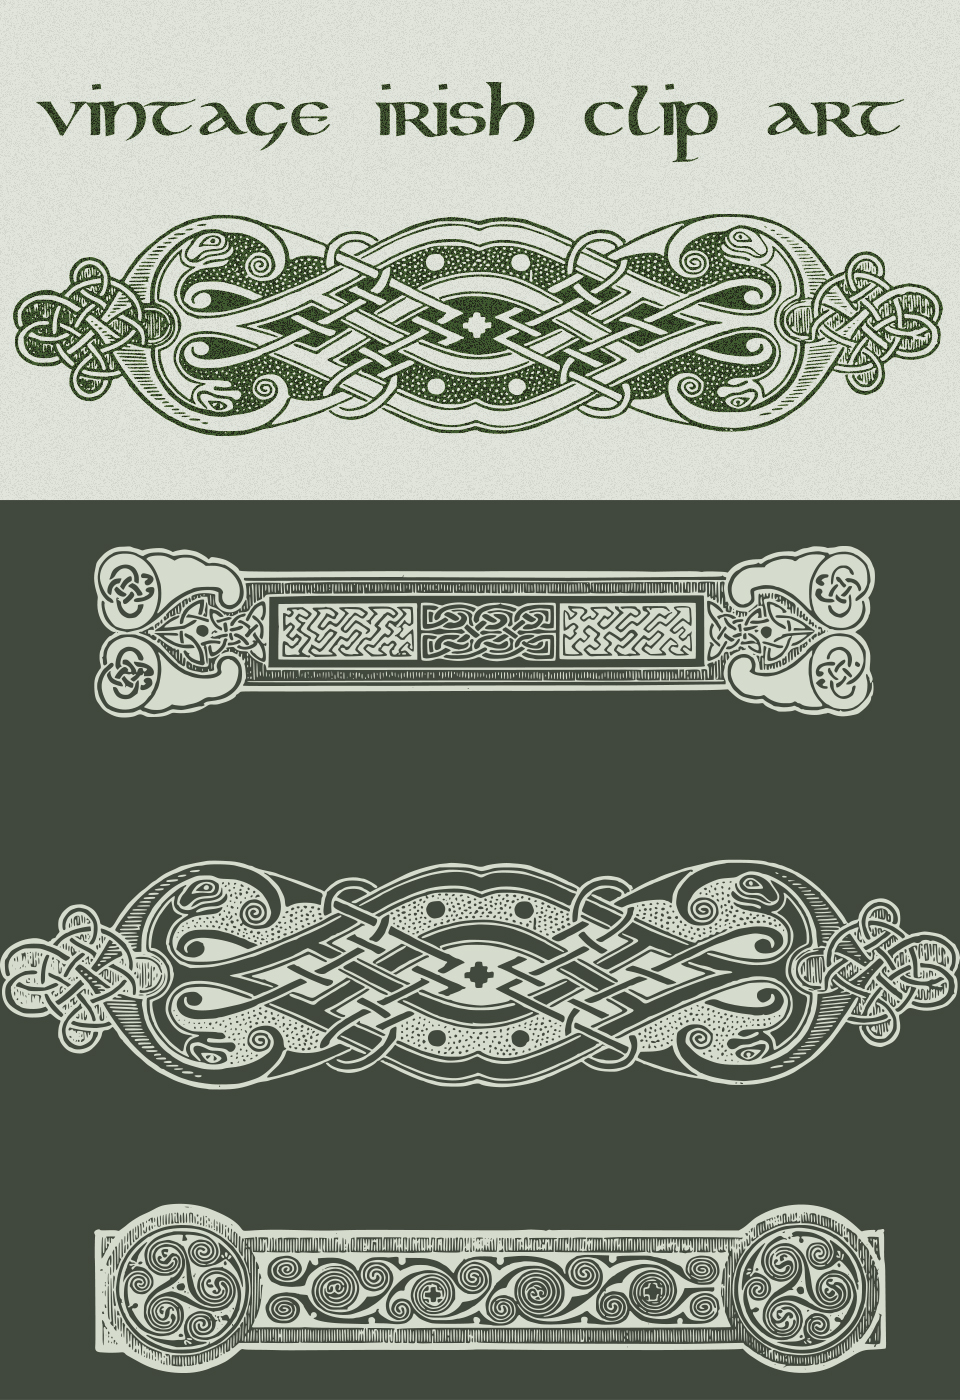 Vintage Irish Clip Art